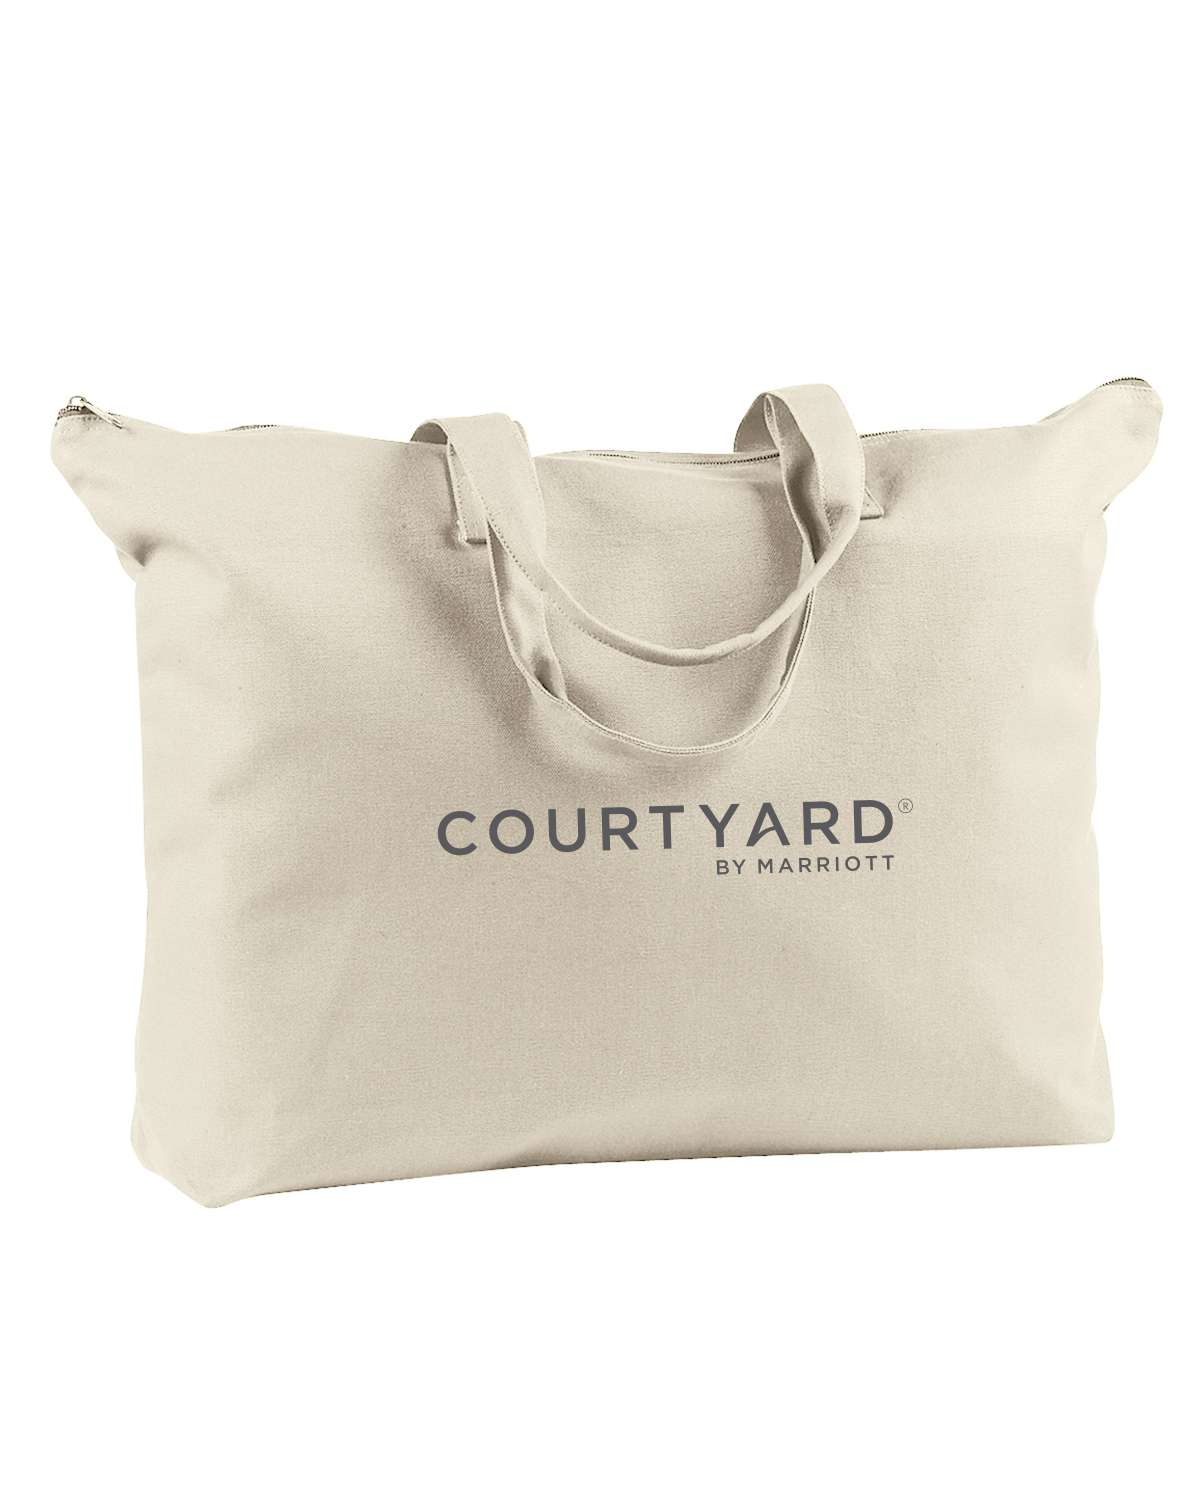 """Canvas Tote Bags. Color: Natural. 22""""L x 15""""H - Carrying Handles - Zippered Top AND Zippered Inside Pocket!"""